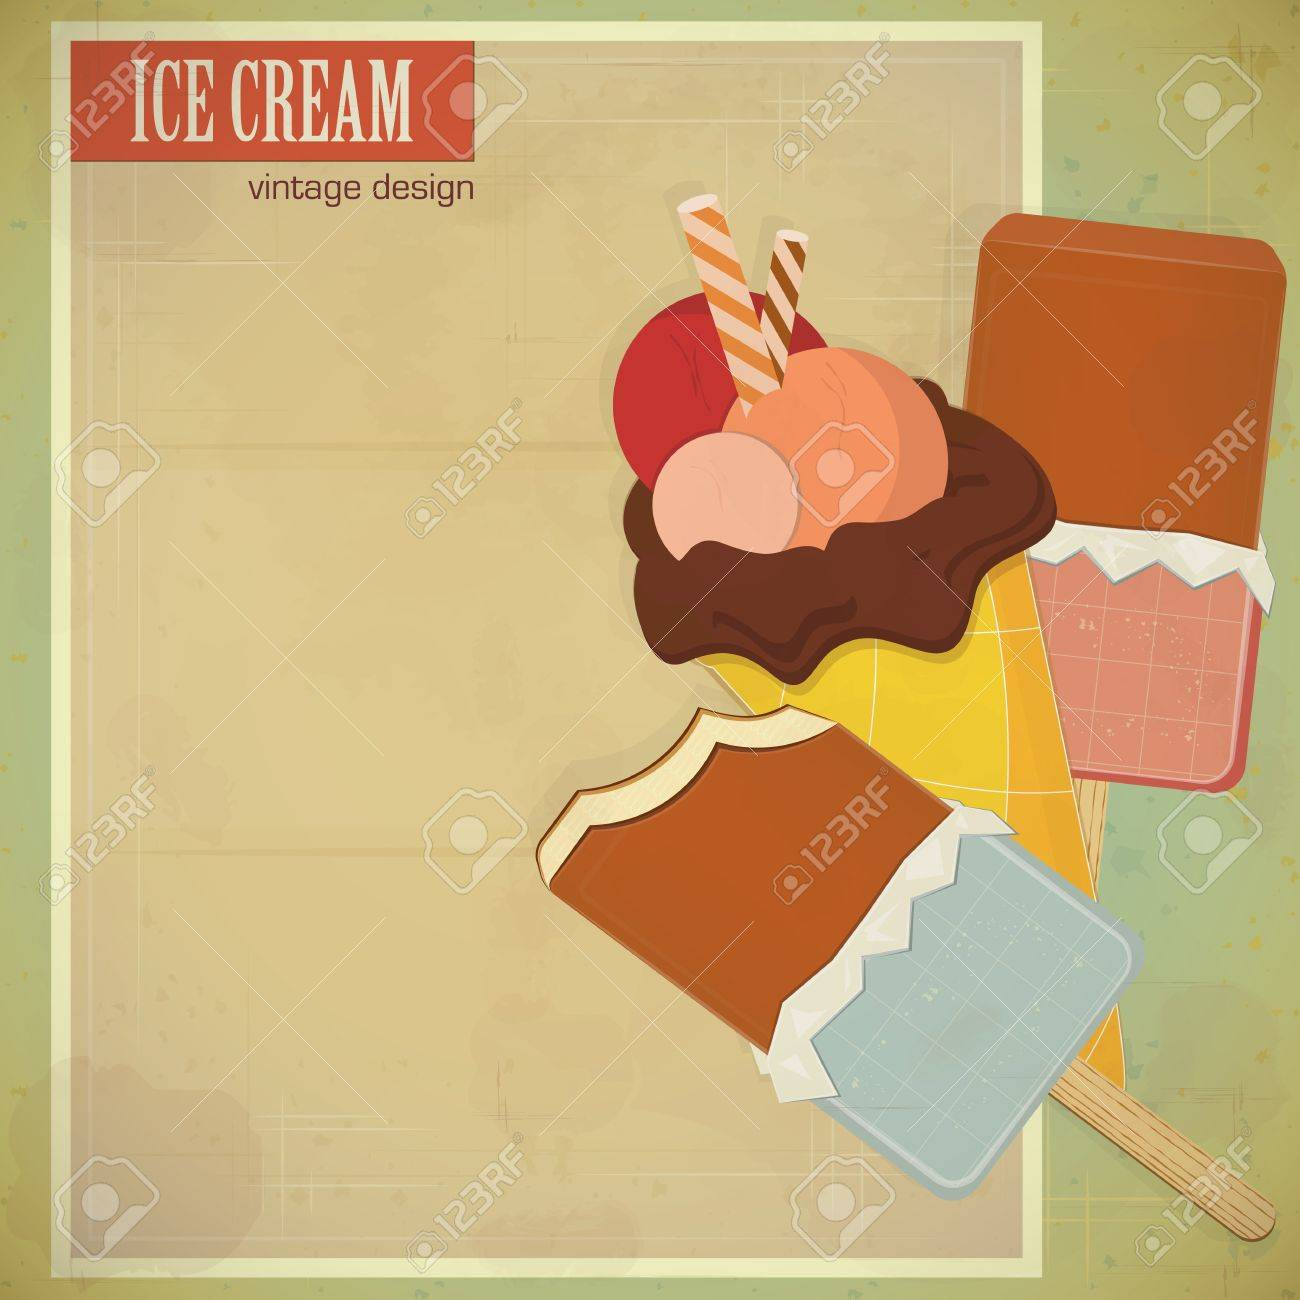 vintage card - ice cream on grunge background with place for text - vector illustration Stock Vector - 13231427